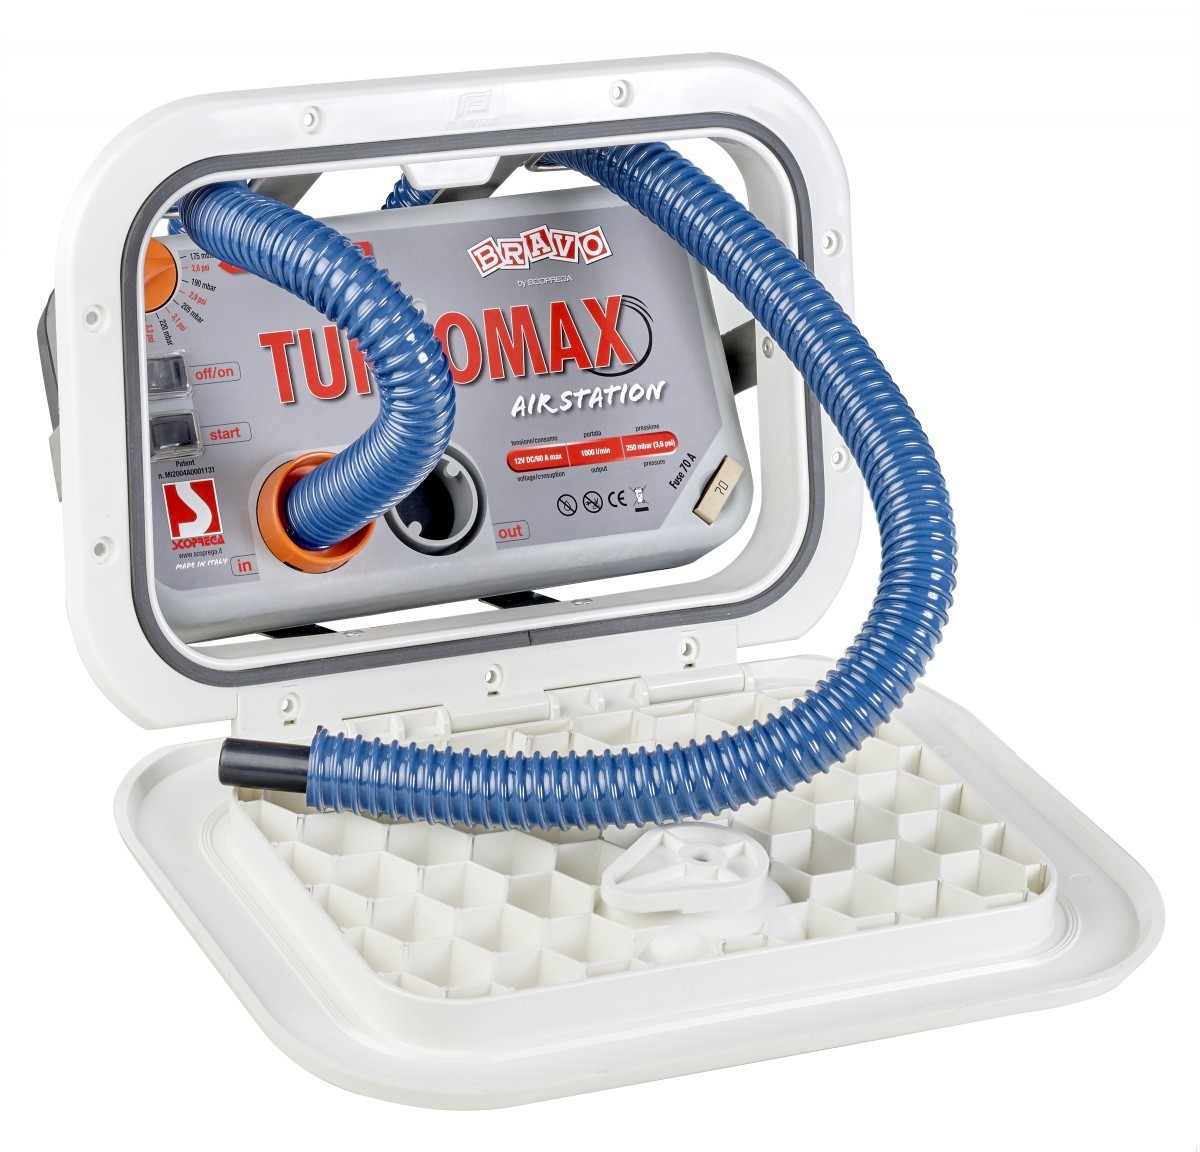 BUILT-IN TURBO MAX INFLATOR